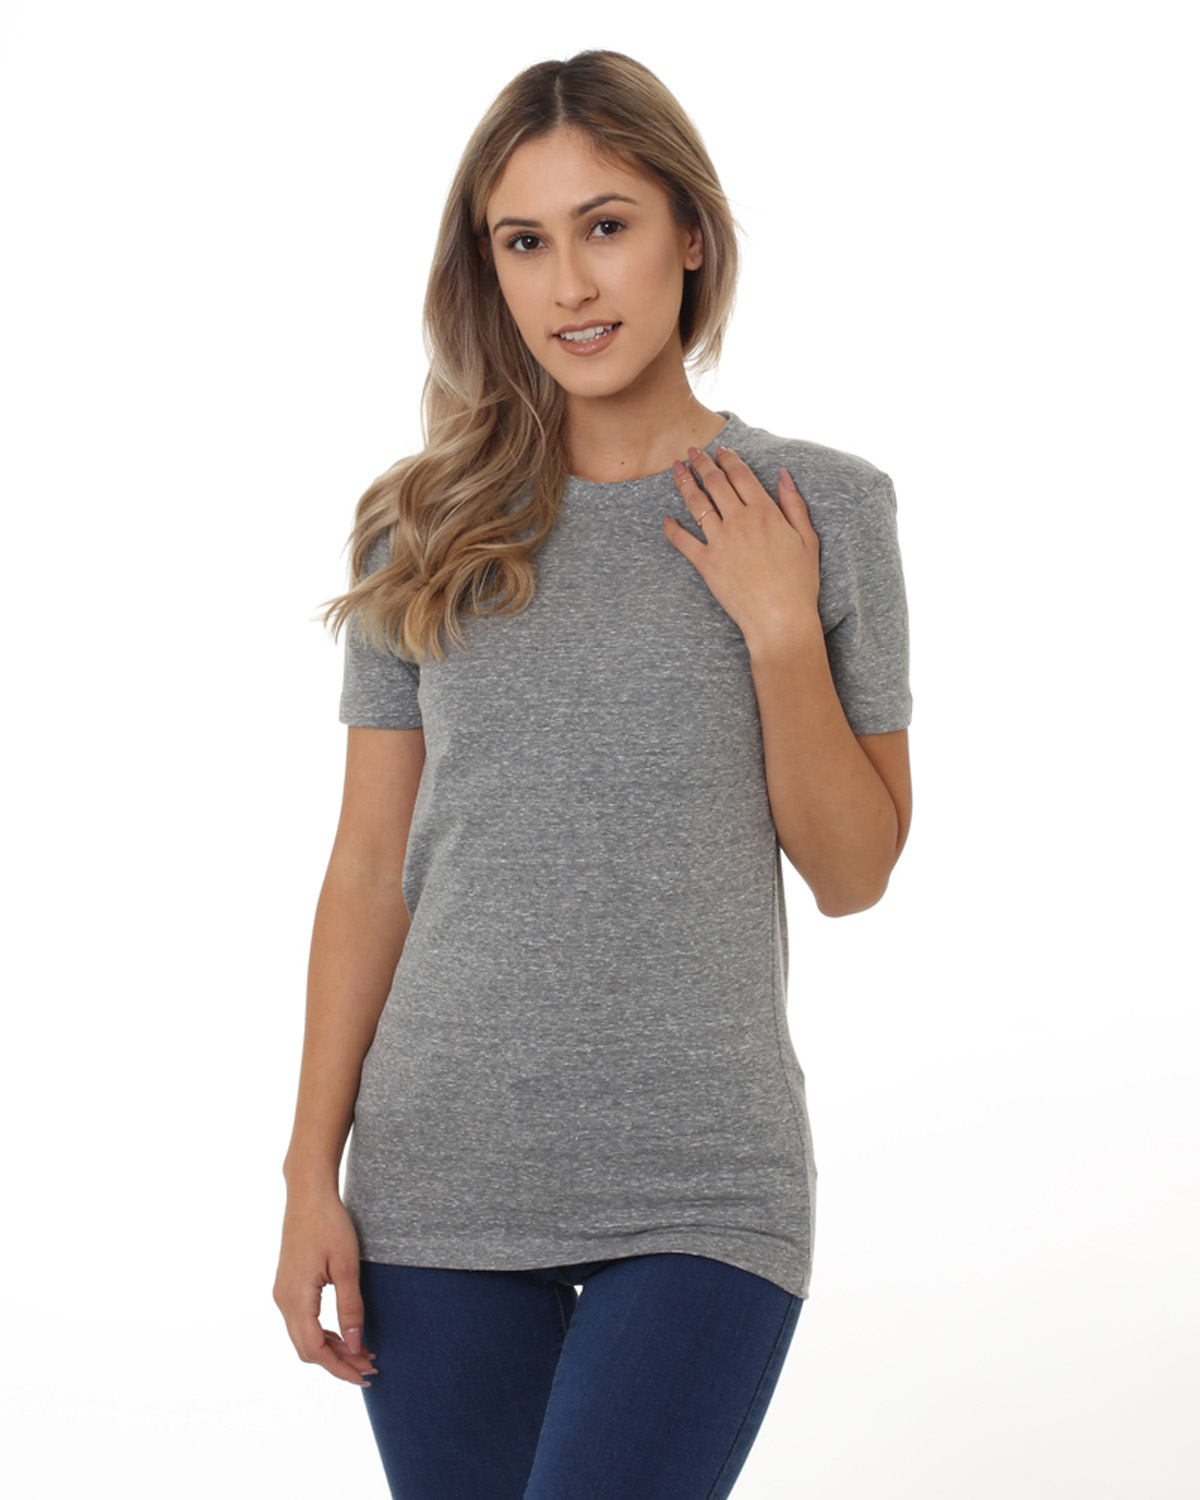 Women's Tri-Blend Short Sleeve T-Shirt